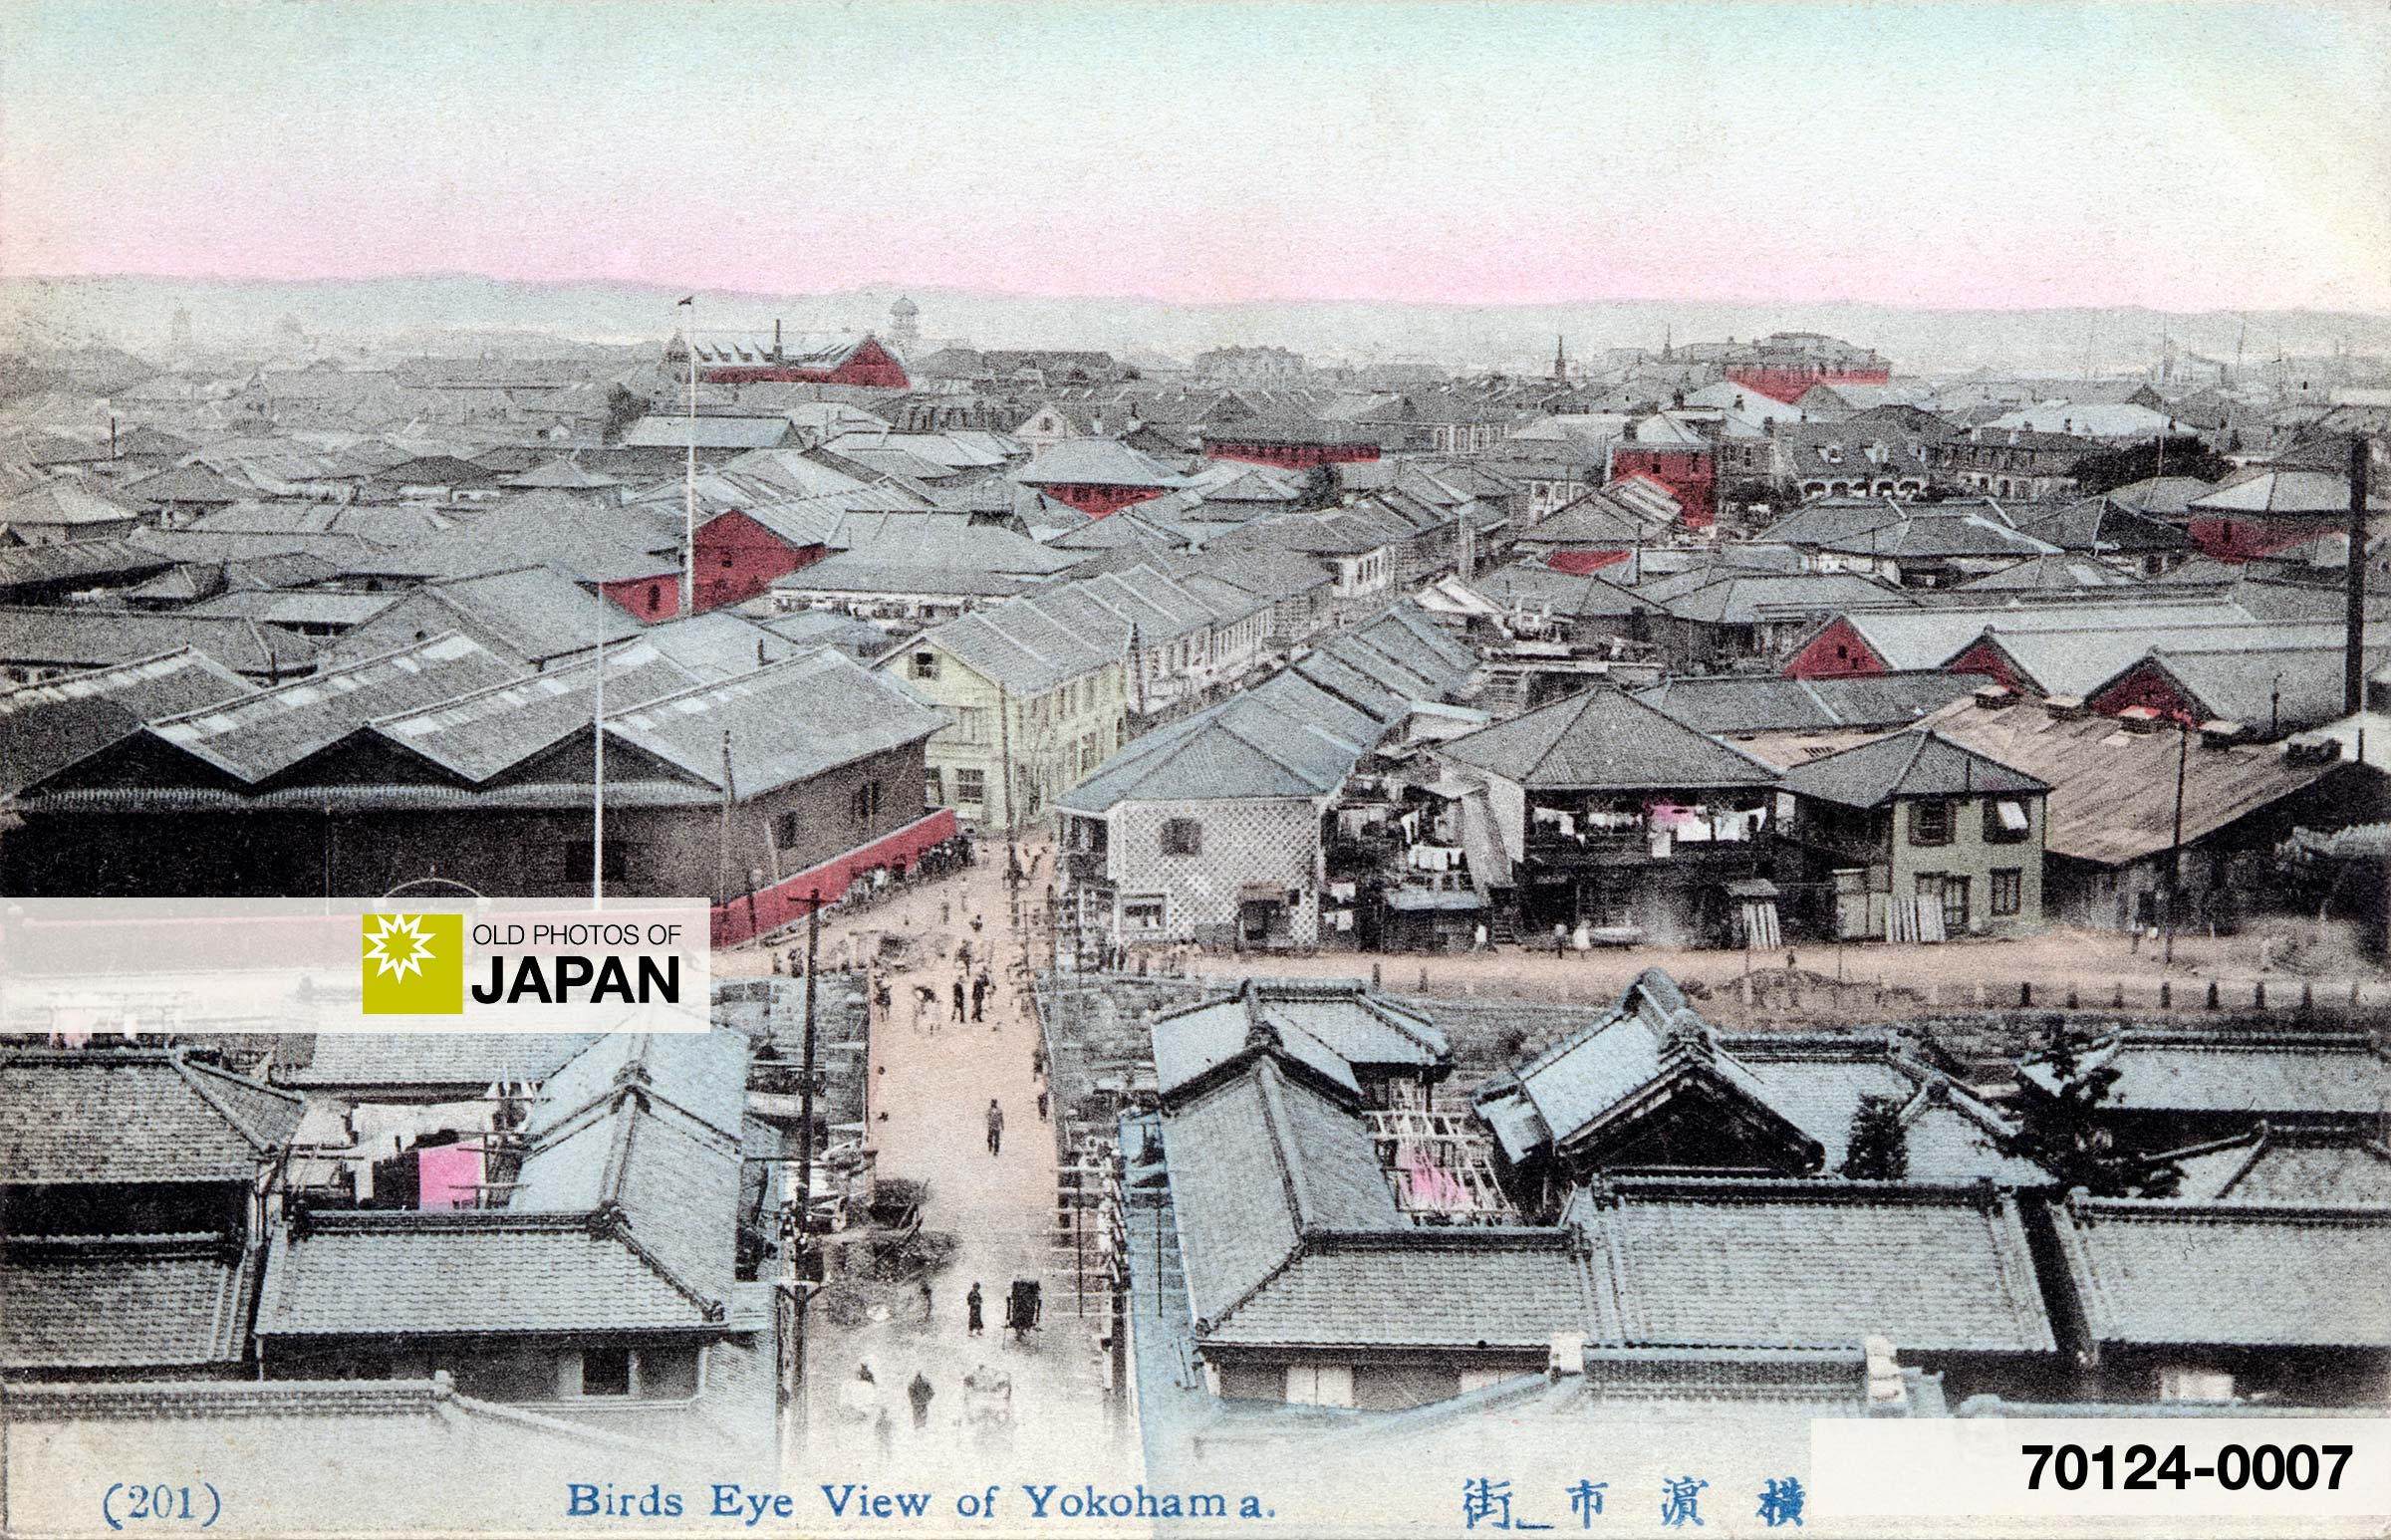 Bird's Eye View of Yokohama